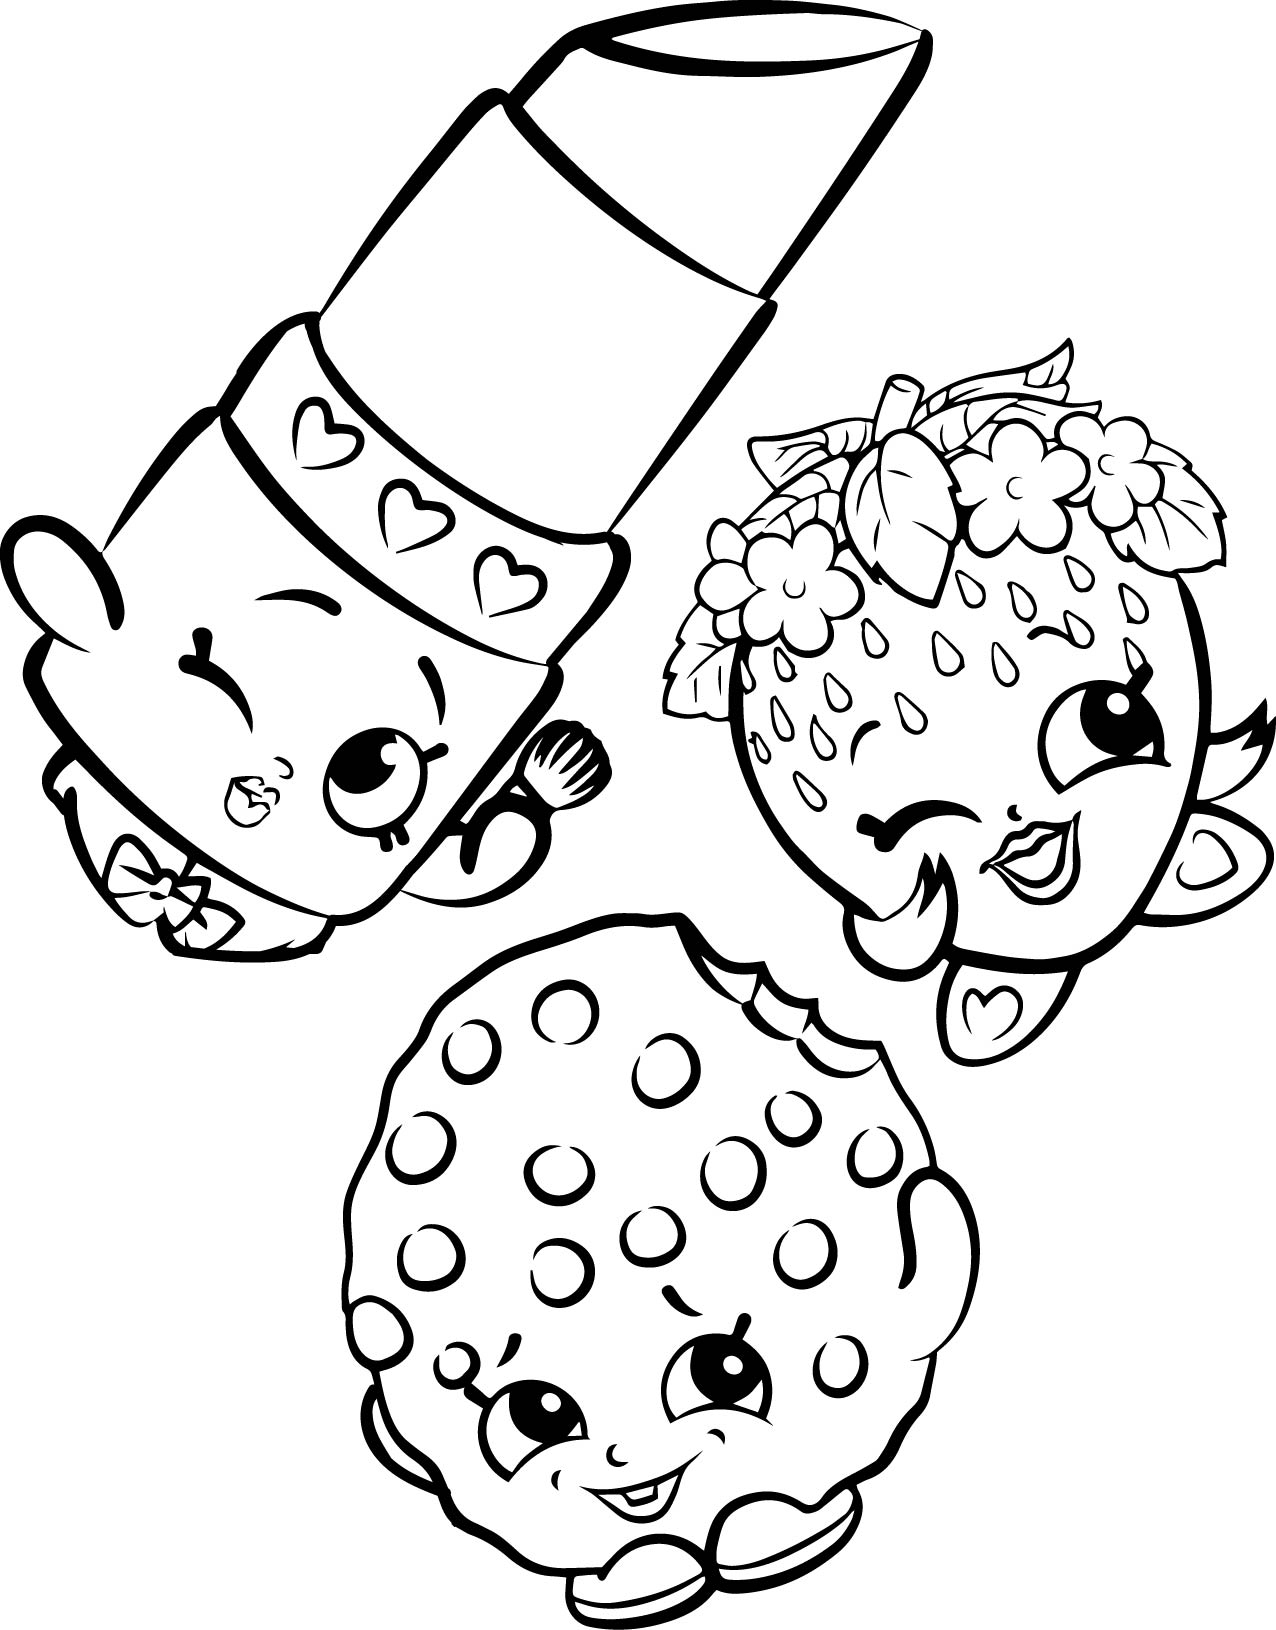 1276x1630 Fresh Shopkins Coloring Sheets Free Coloring Pages Download